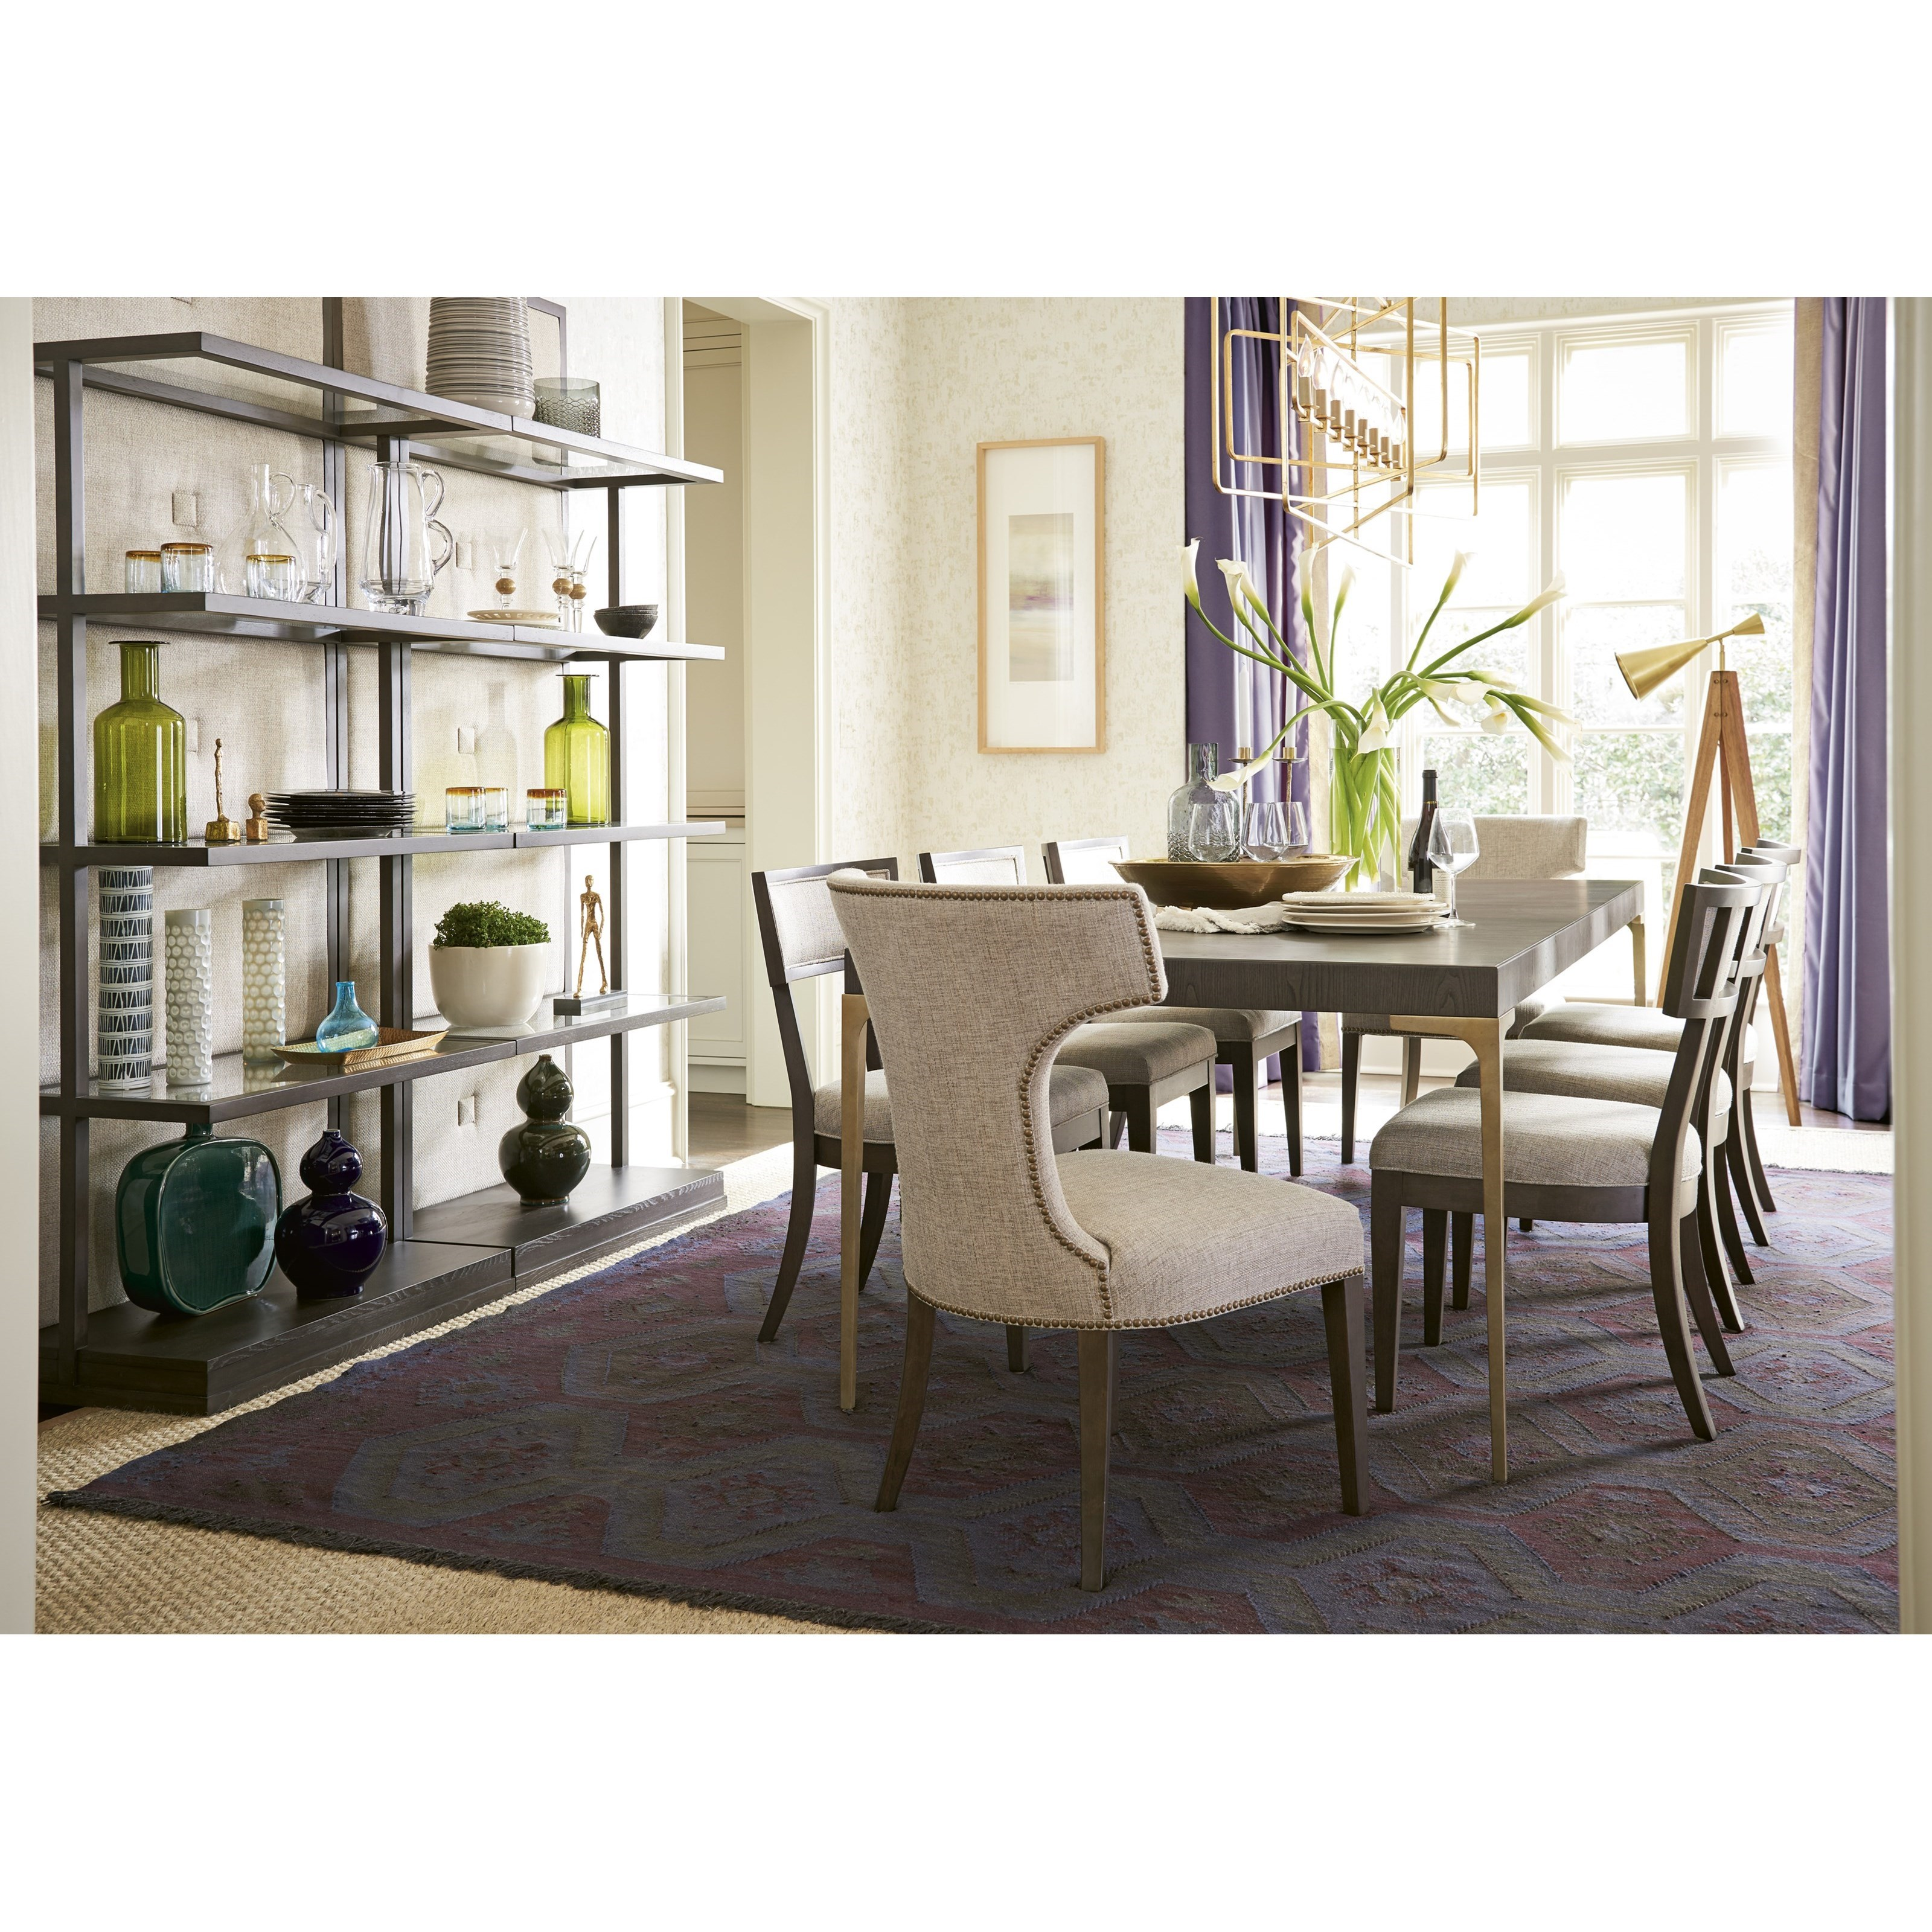 Soliloquy Formal Dining Room Group by Universal at Baer's Furniture